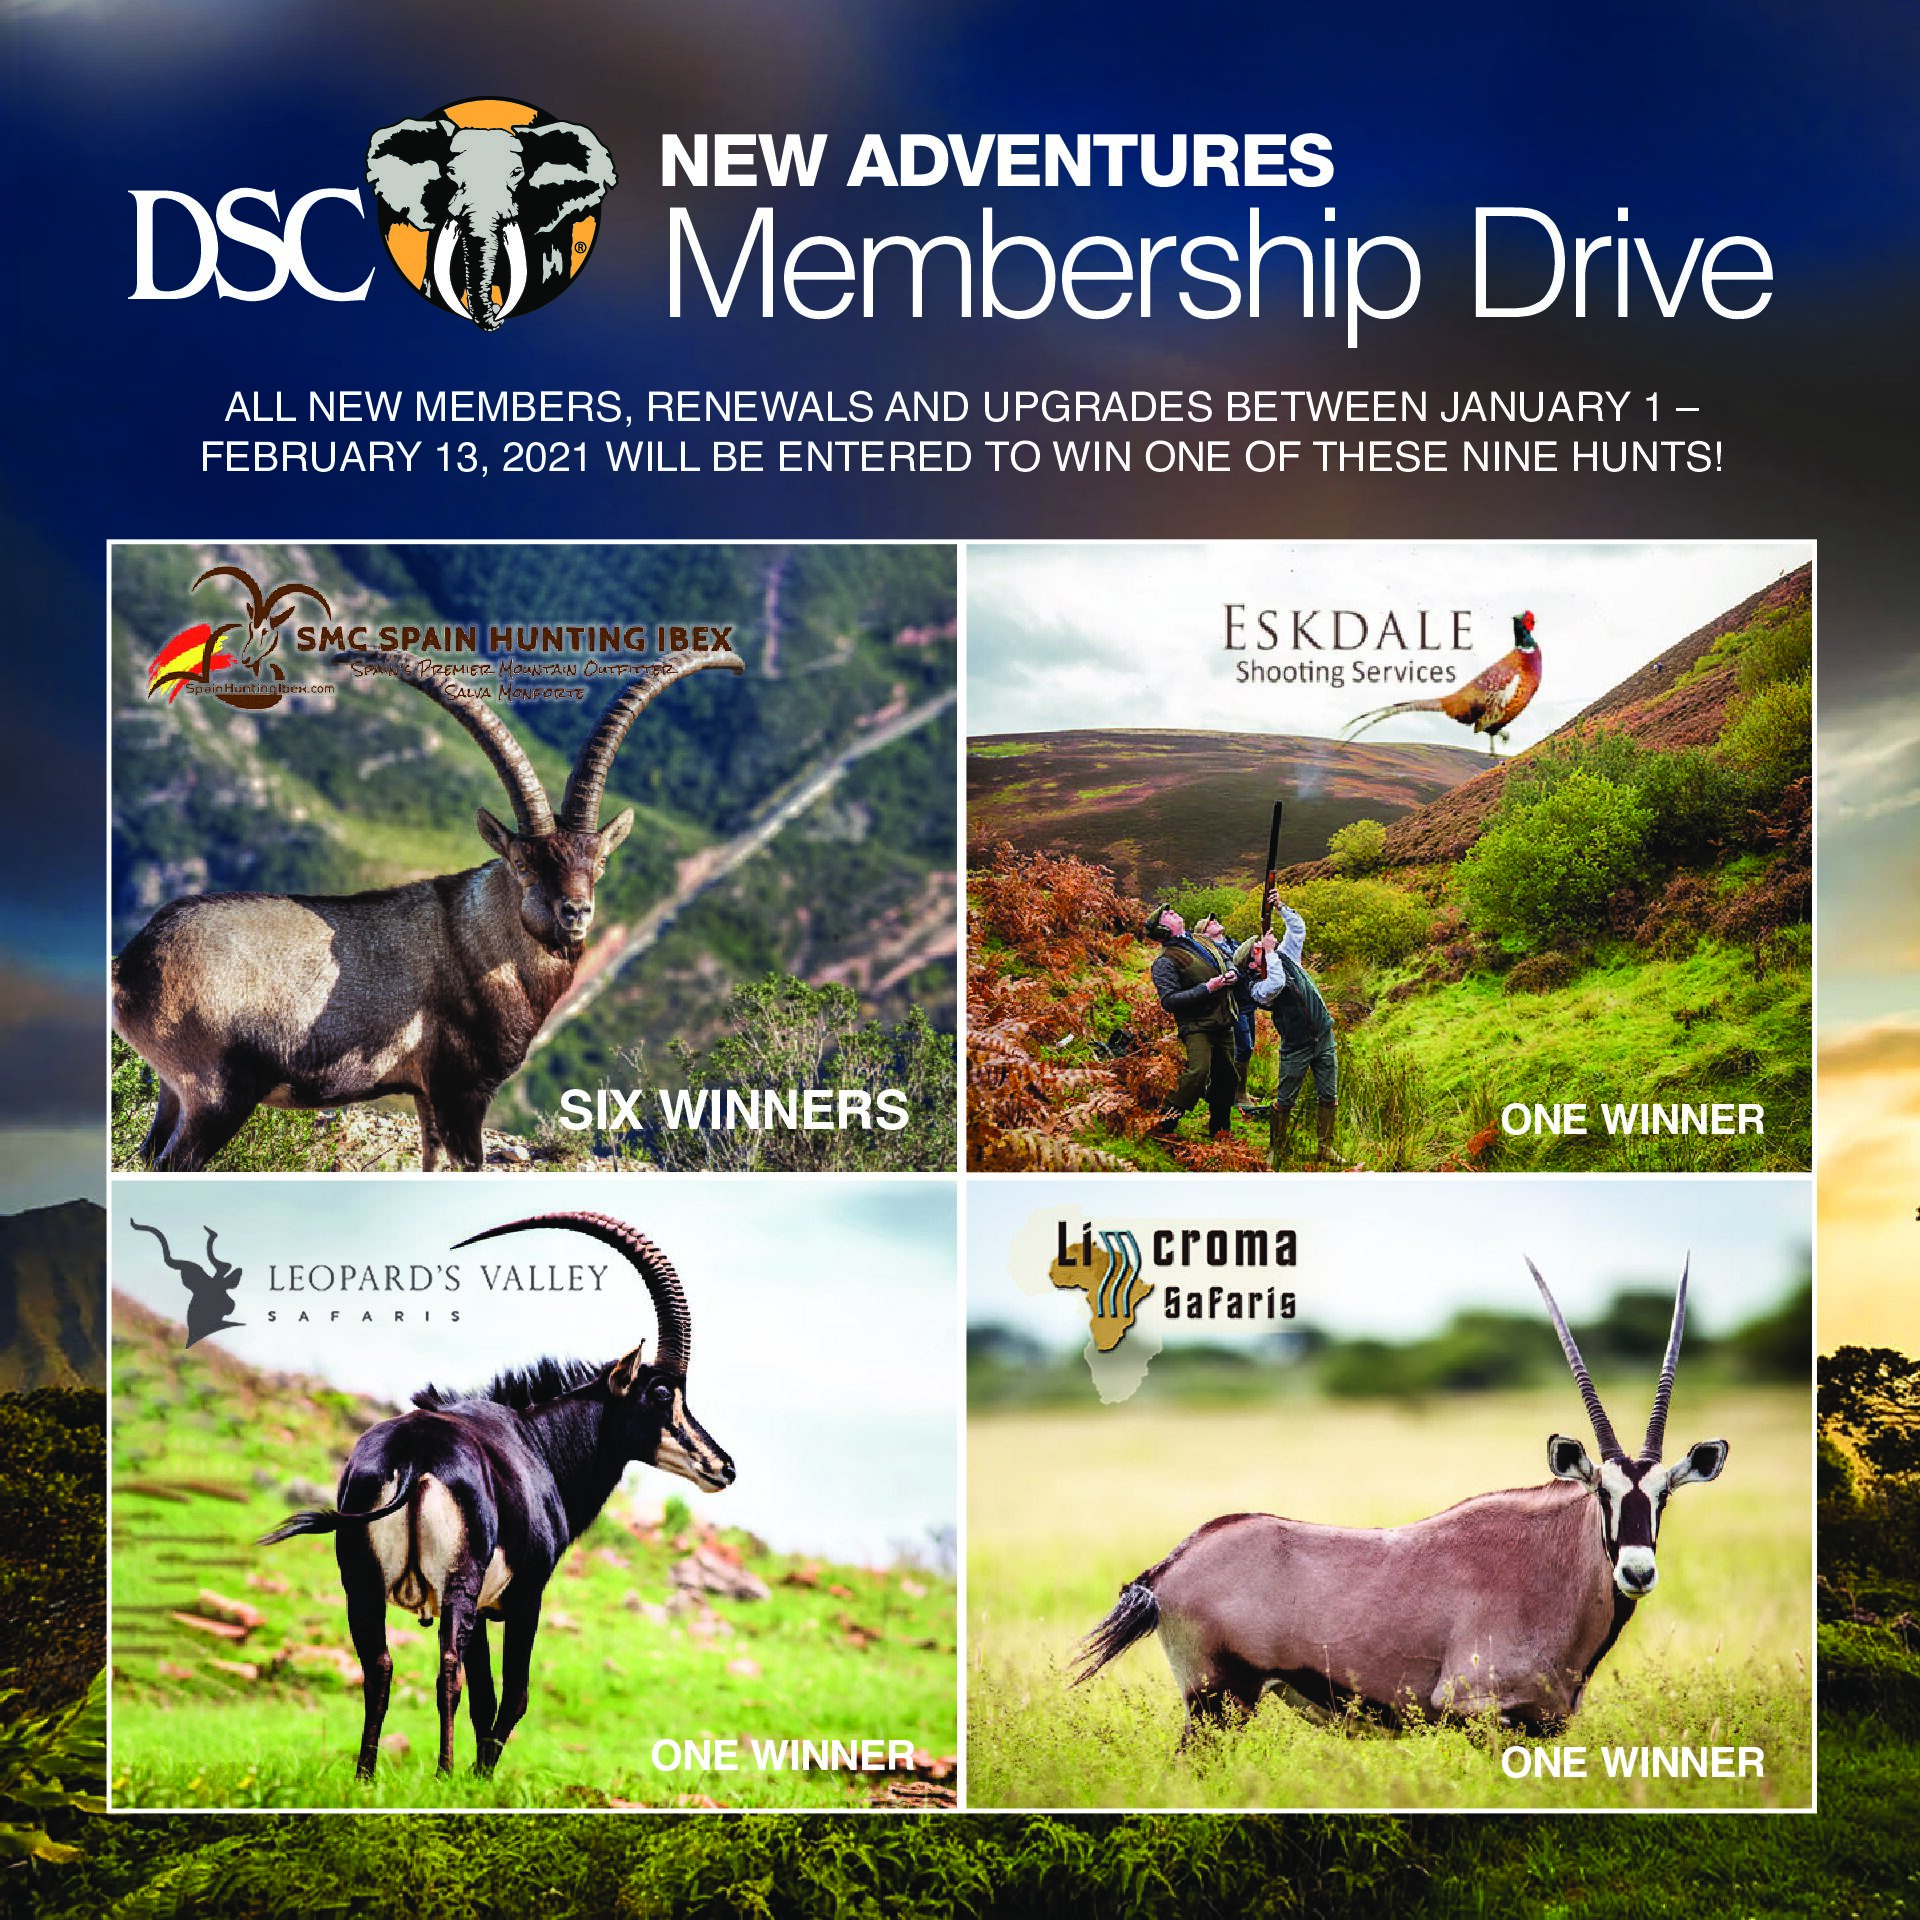 New Adventures Membership Drive